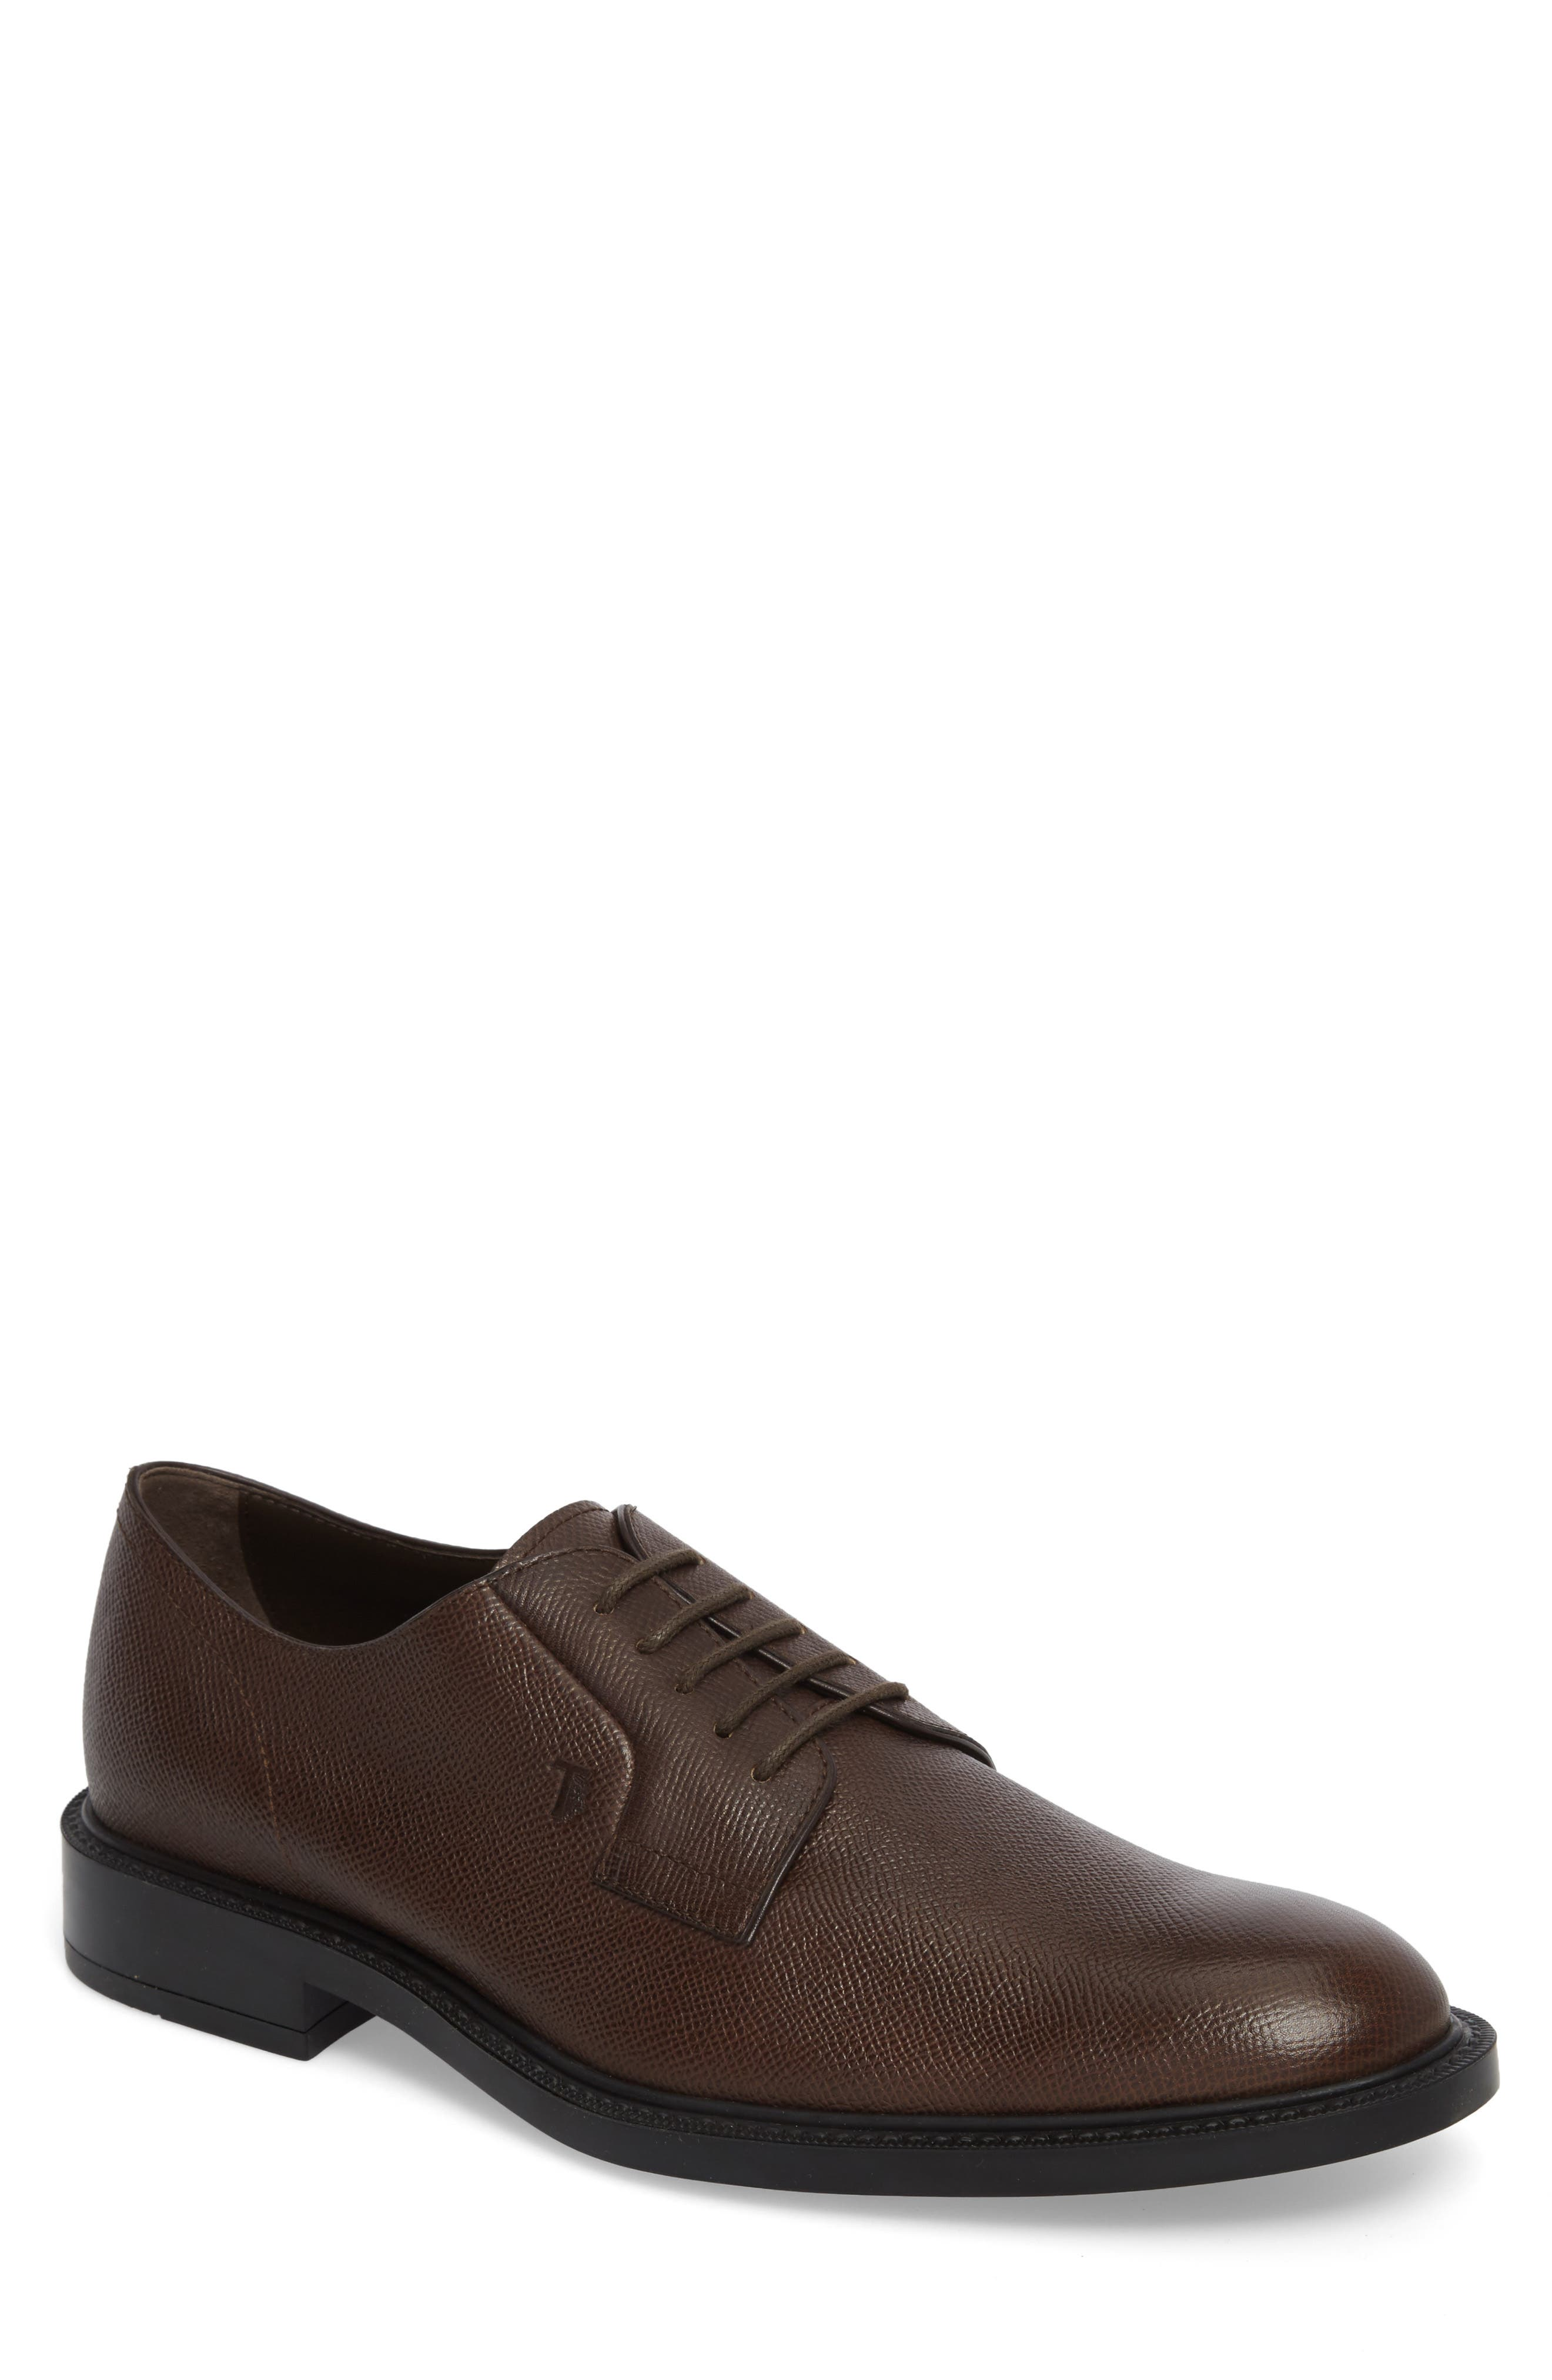 Clean Plain Toe Derby,                         Main,                         color, Brown Textured Leather